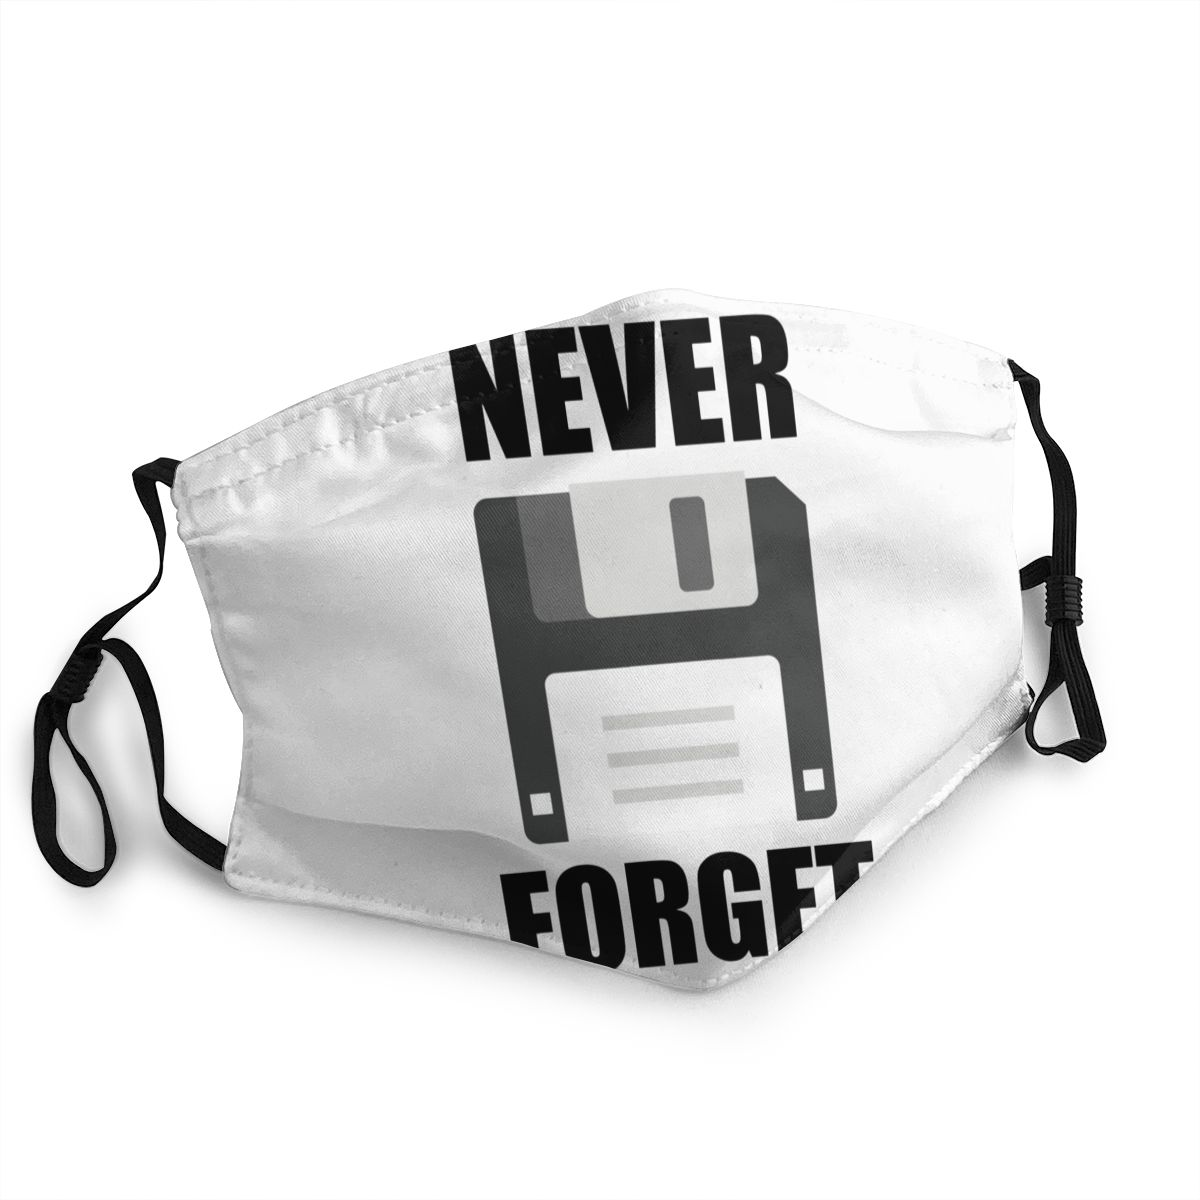 Never Forget Men Women Reusable Mouth Face Mask Computer Anti Bacterial Dust Protection Cover Respirator